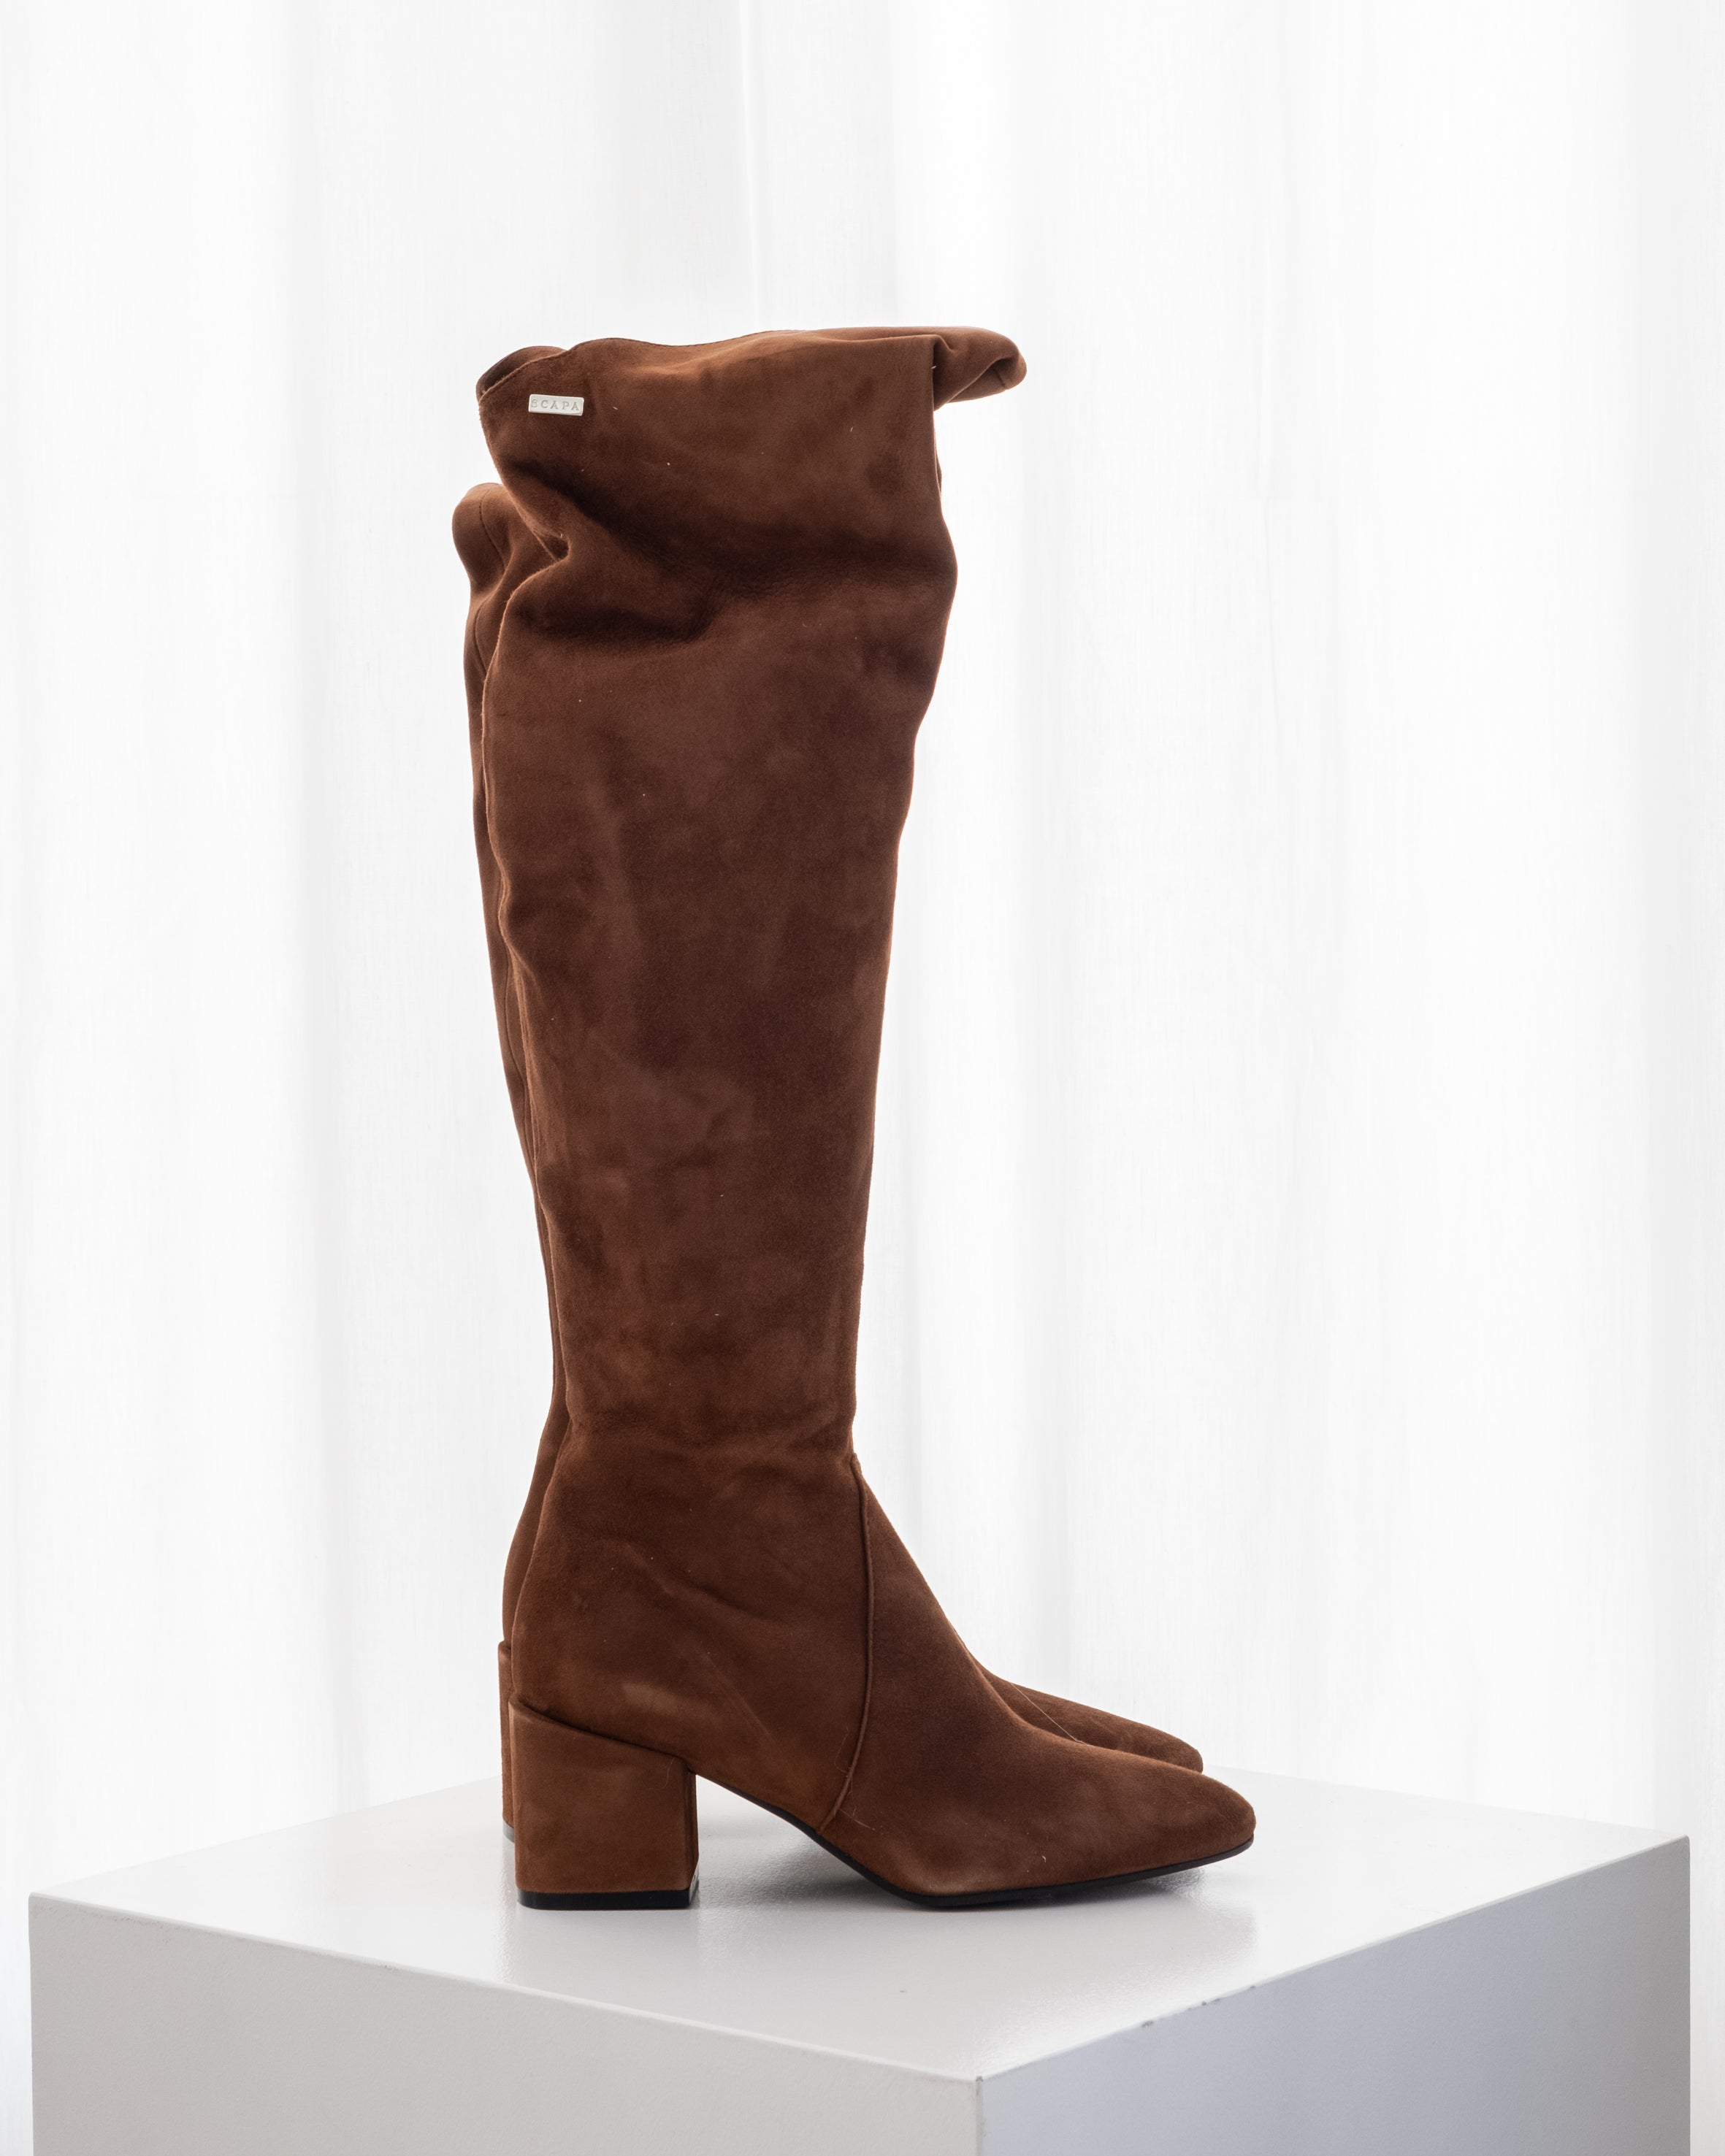 BOOT MUNICH - Shoes - SCAPA FASHION - SCAPA OFFICIAL